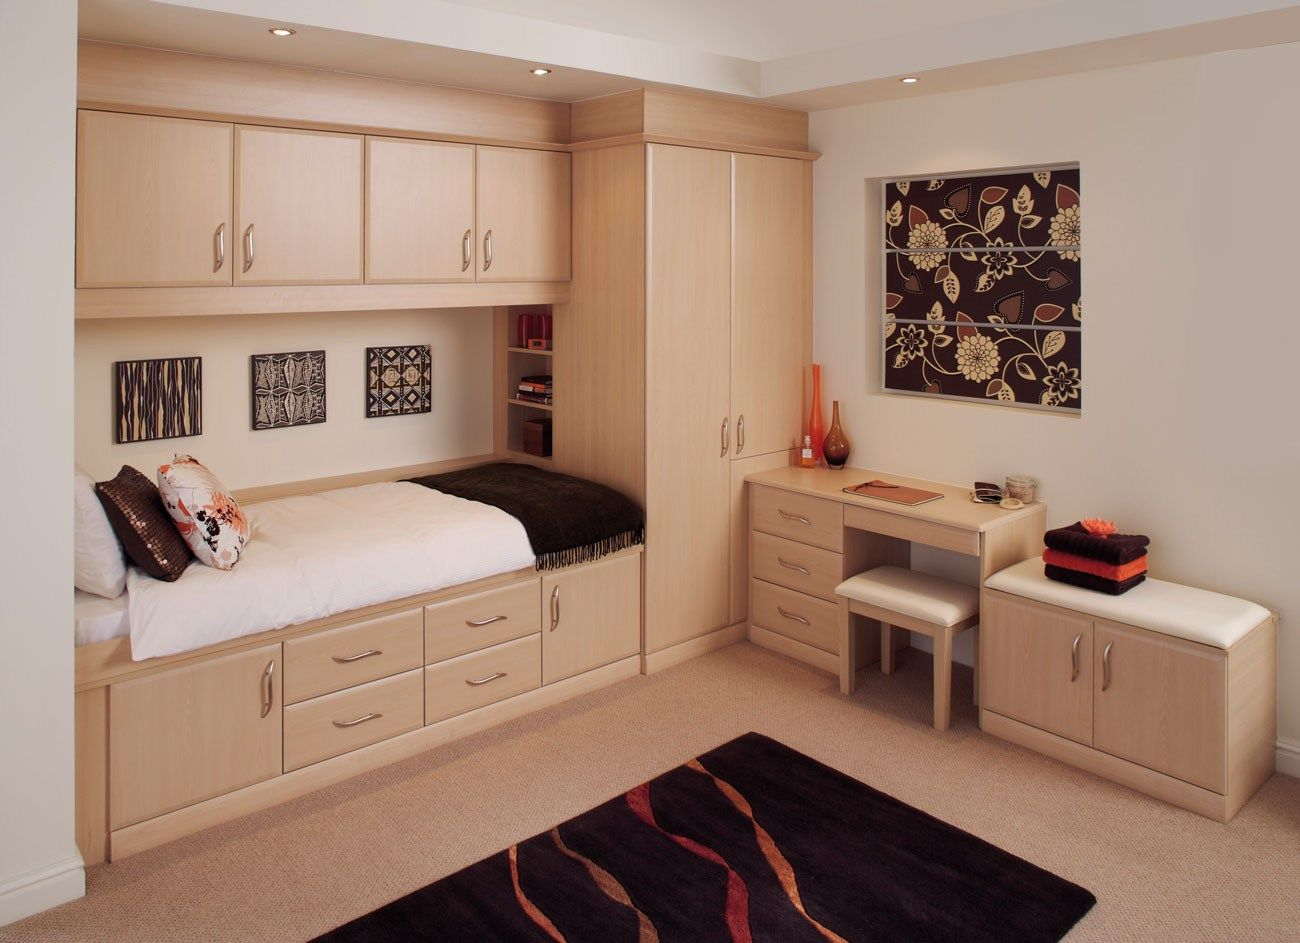 Marvelous Fitted Bedroom Hpd313 - Fitted Wardrobes